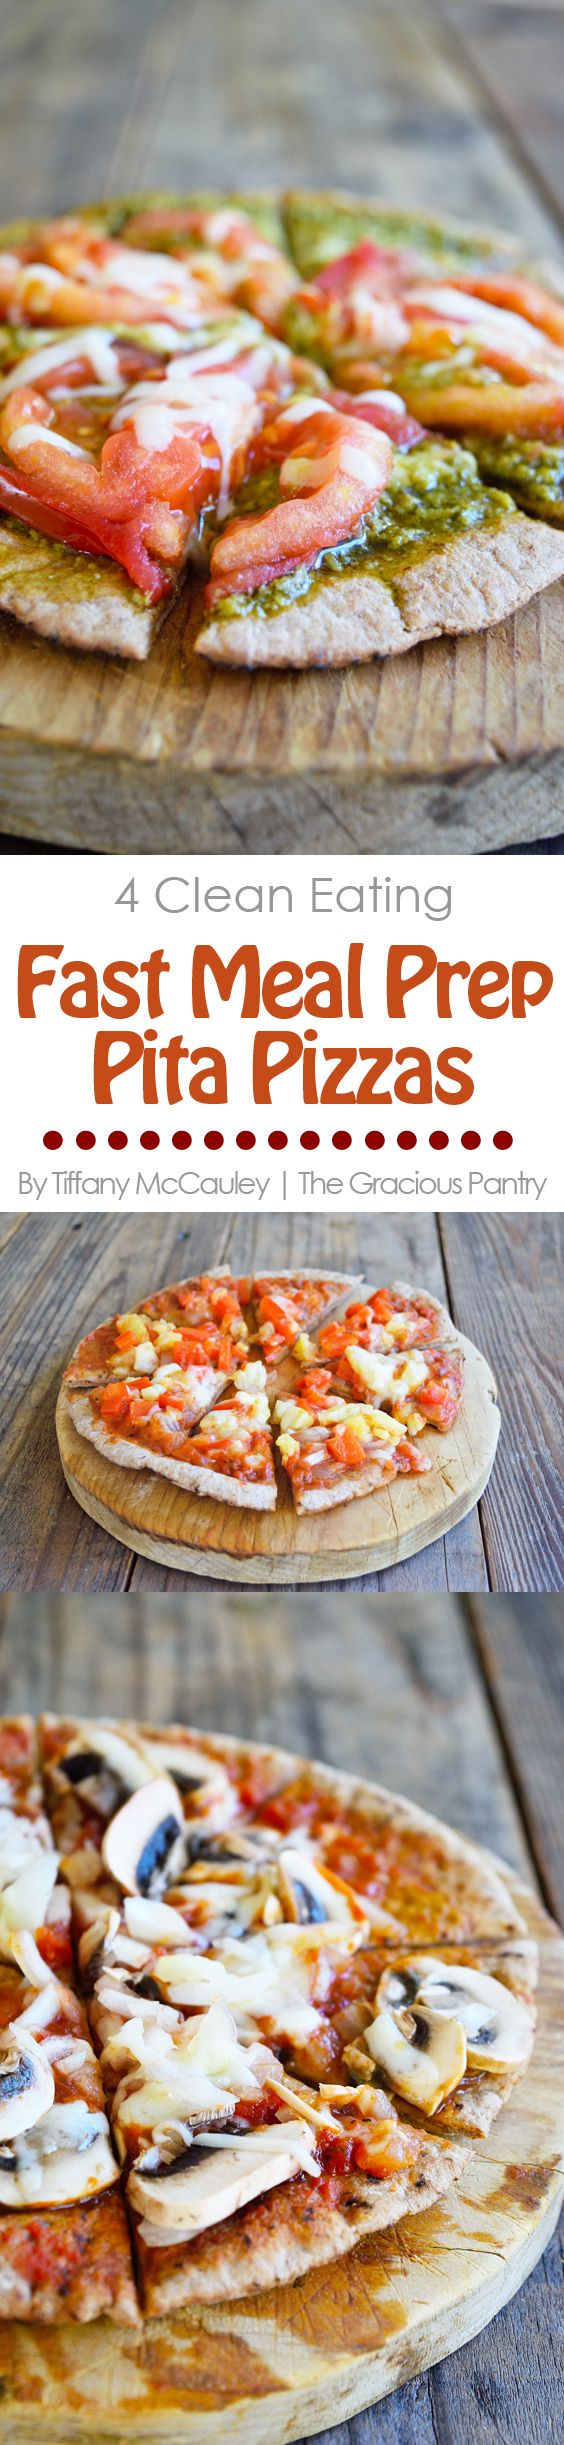 Meal Prep Pizza You Can Prep In Minutes The Gracious Pantry Clean Eating Vegetarian Recipes Clean Eating Pizza Recipes